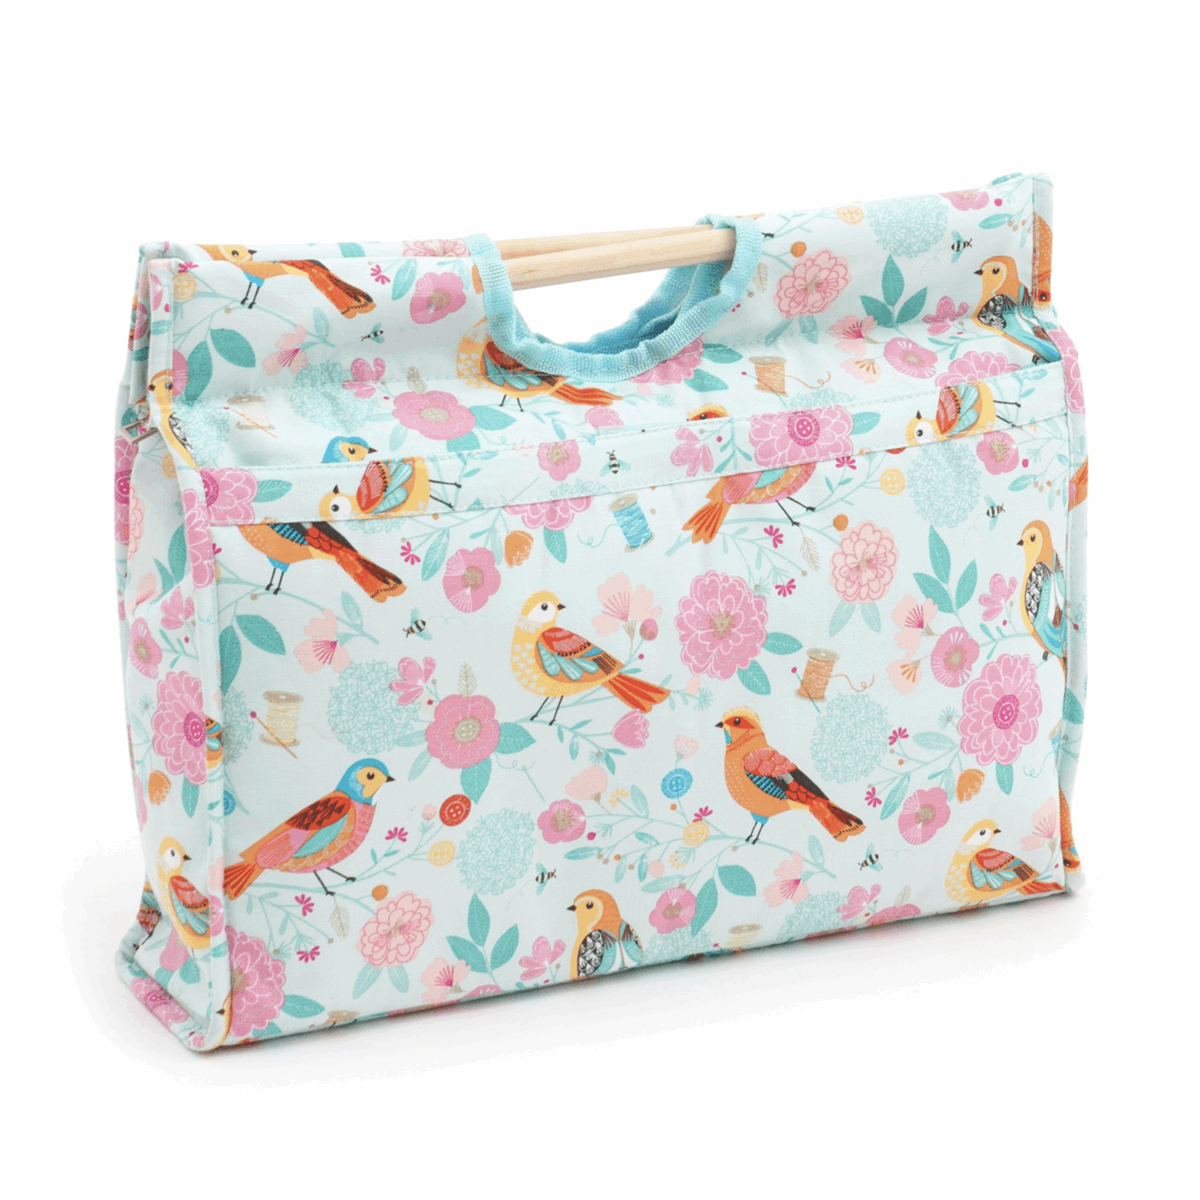 Picture of Craft Bag with Wooden Handles: Birdsong